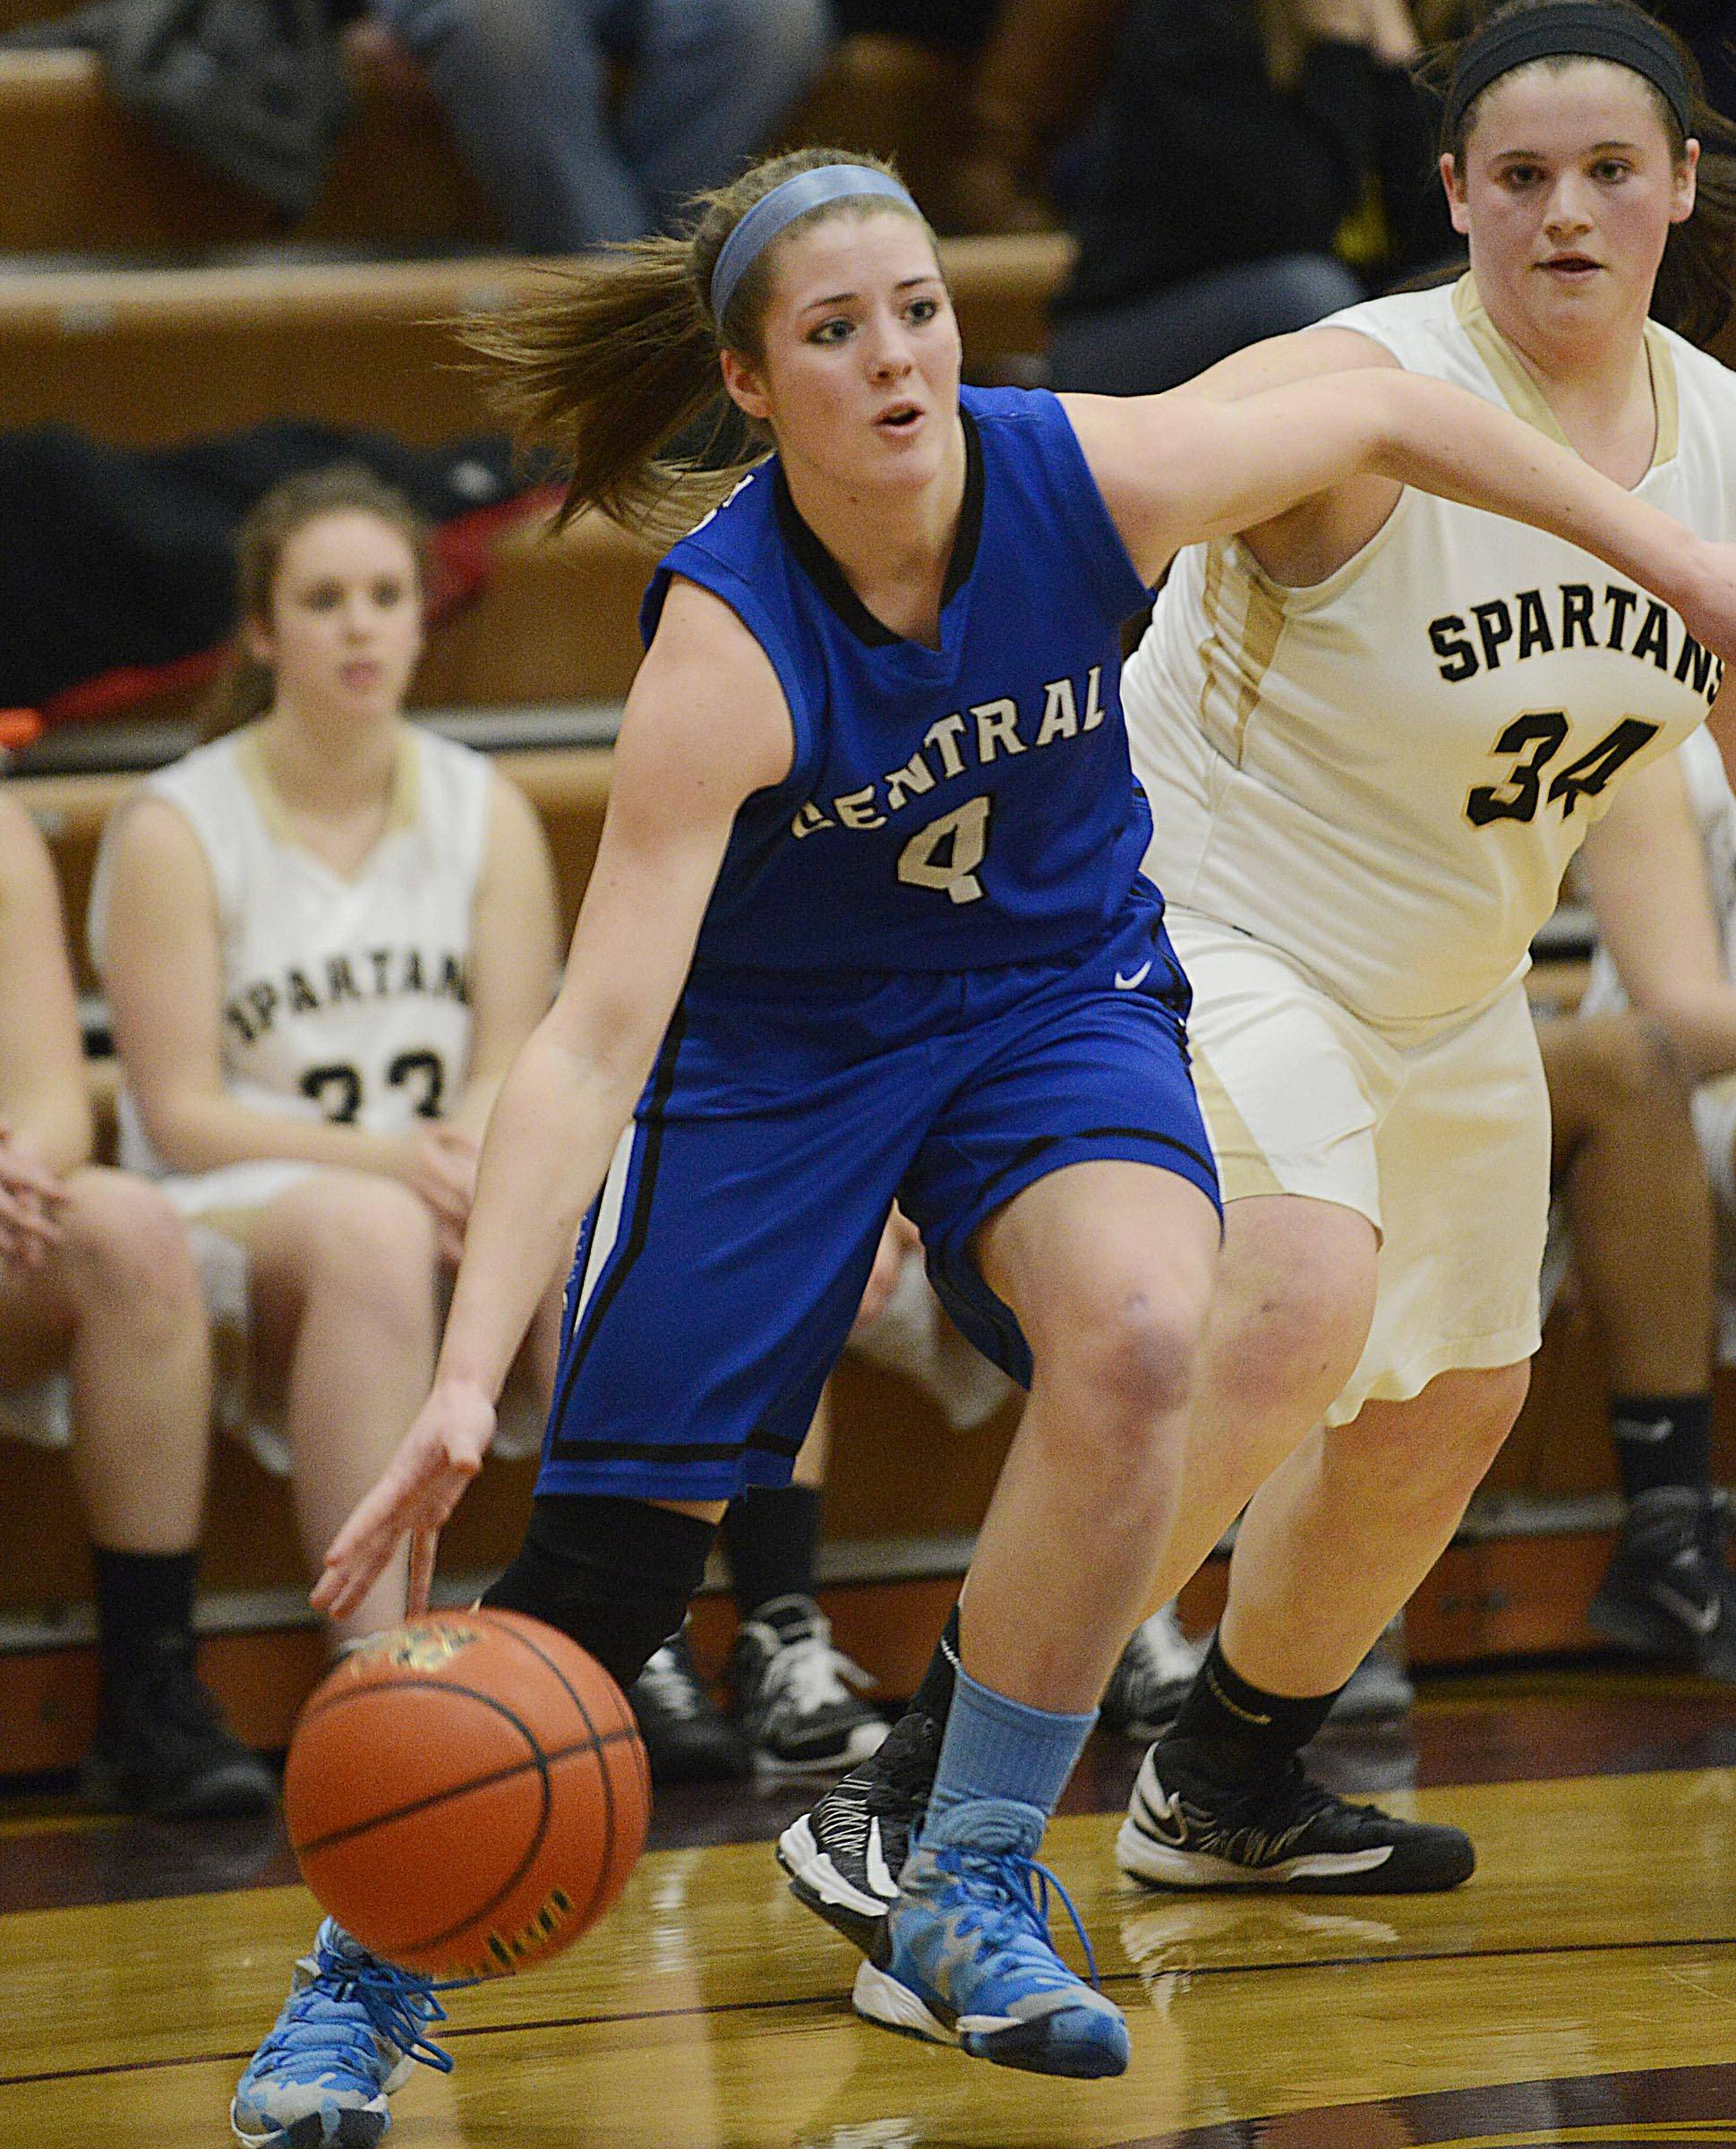 Burlington Central sophomore Kayla Ross (4) drives to the basket against Sycamore in the semifinals of the Class 3A Belvidere sectional.